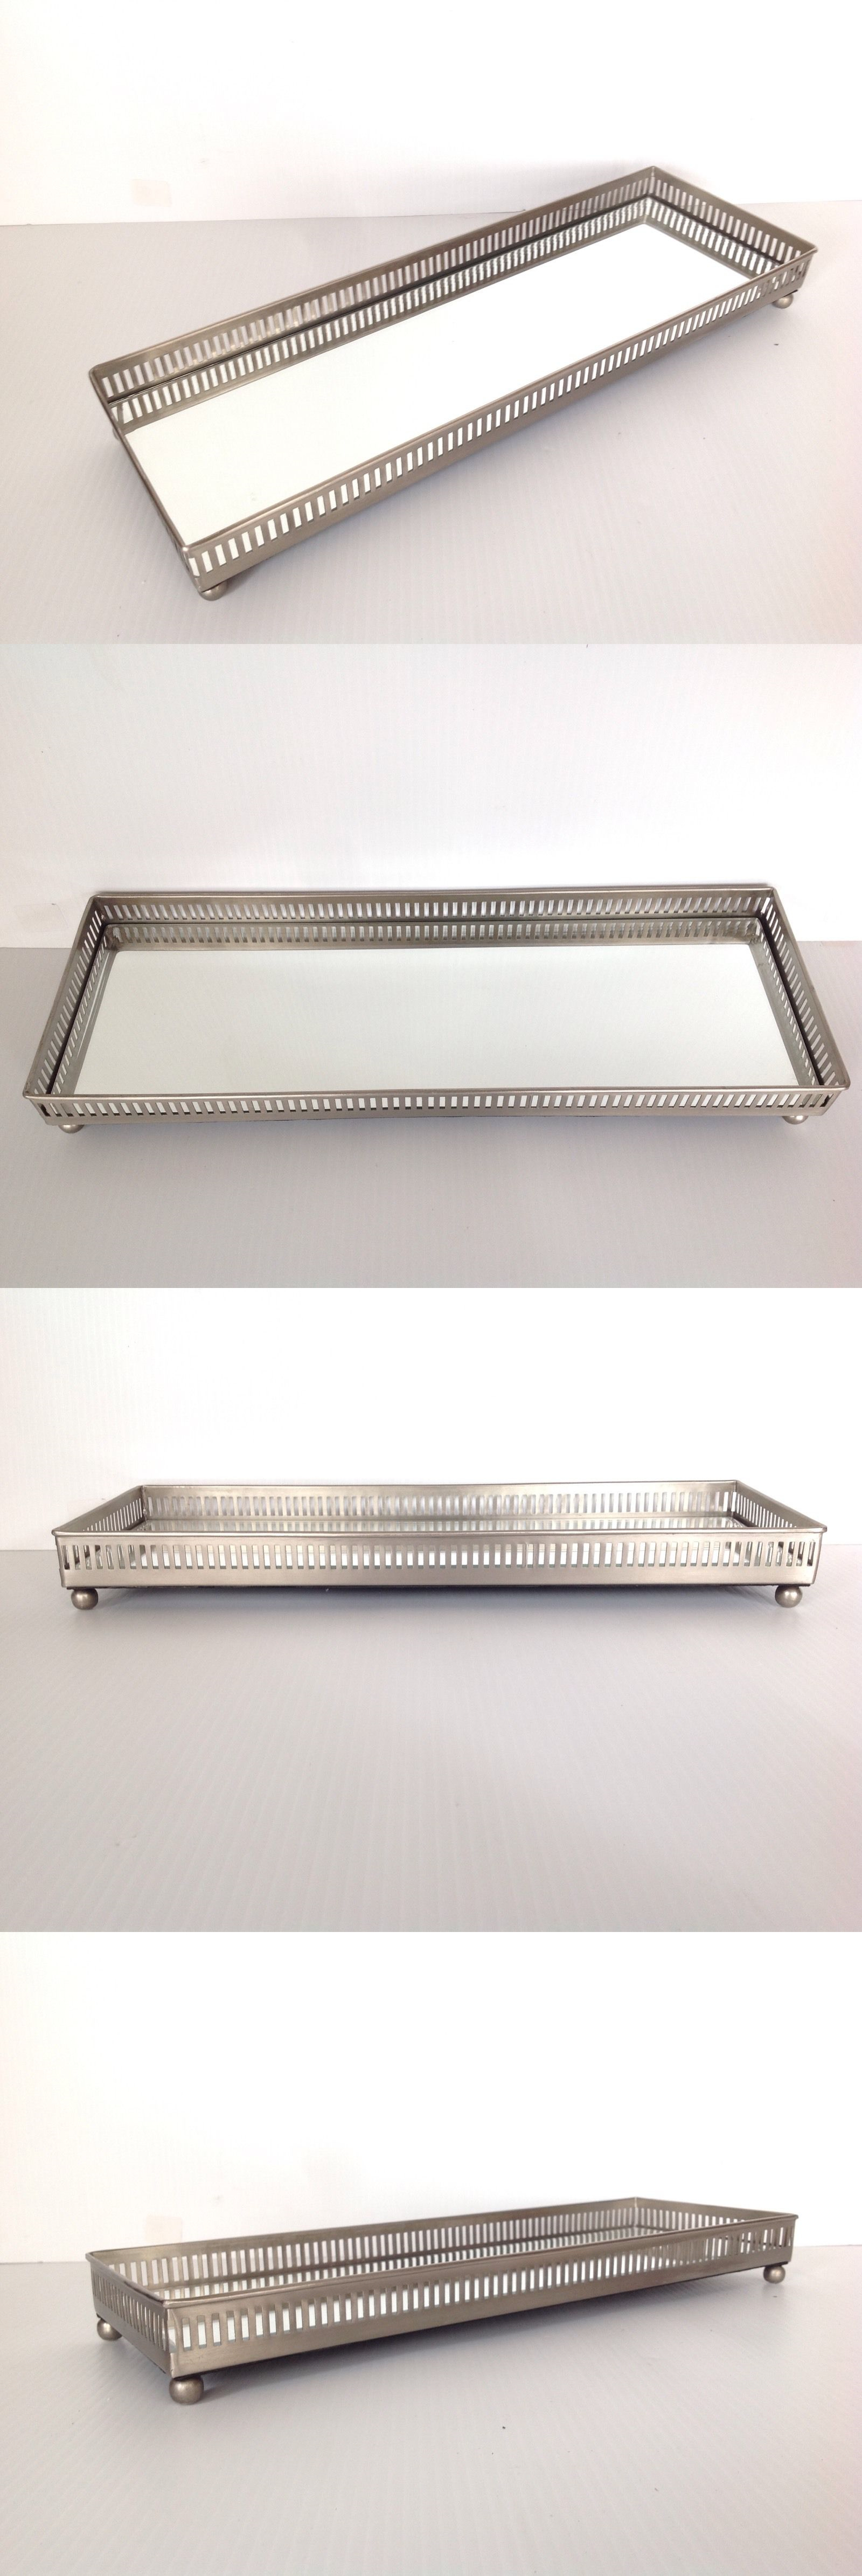 Other Jewelry Organizers 164372 Pottery Barn Mirrored Dresser Top Tray Large Size New Free Shipping